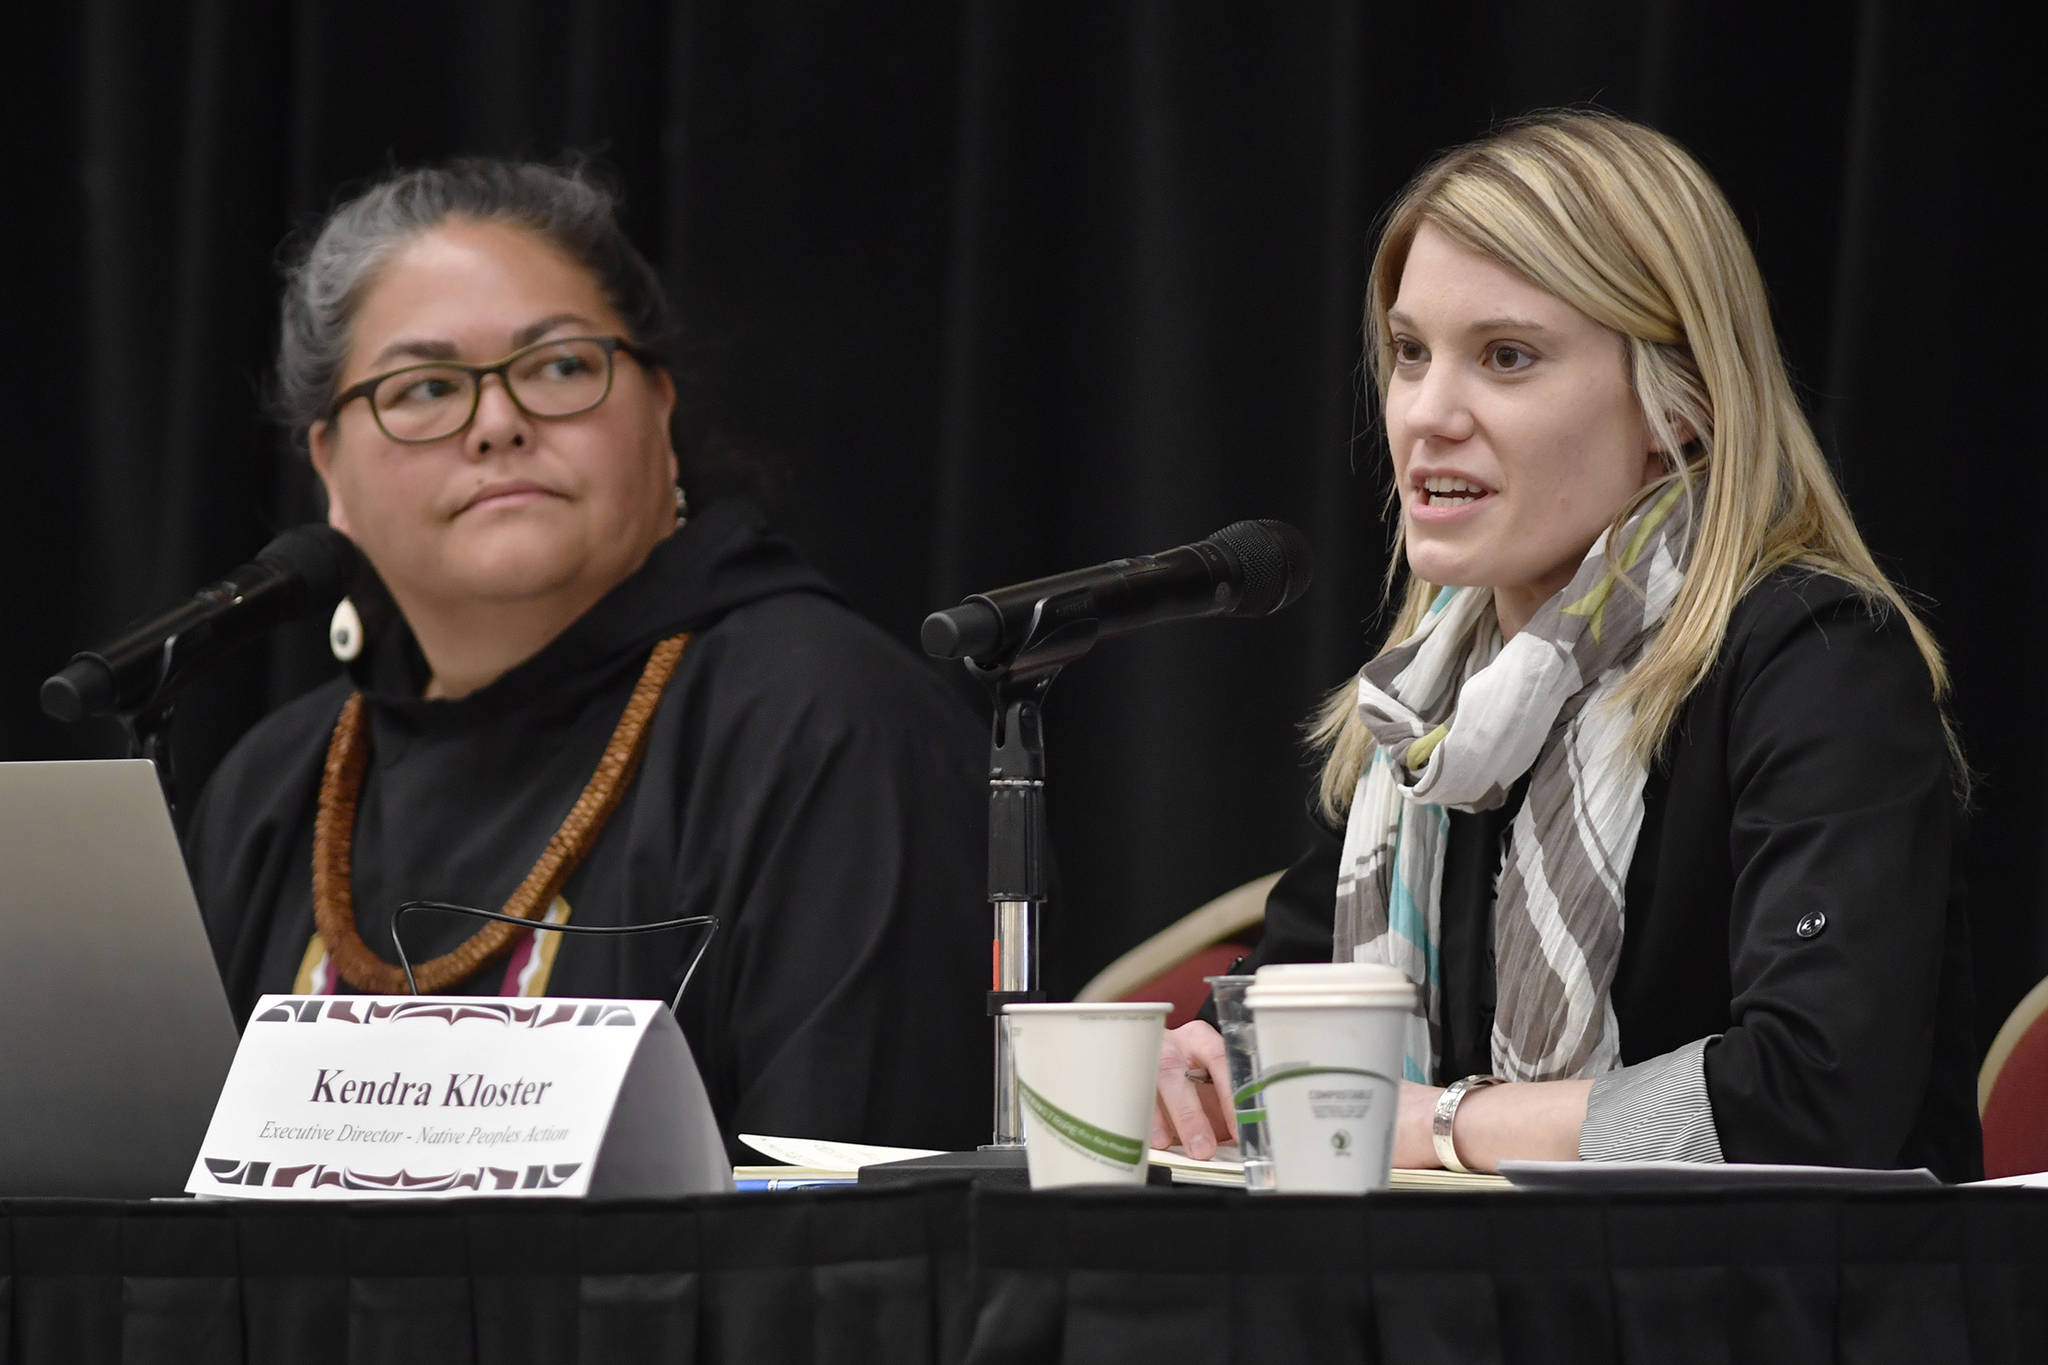 Kendra Kloster, executive director of the Native Poples Action, right, and Liz Medicine Crow, President and CEO of the Alaska Native Policy Center, speak at the Native Issues Forum at Elizabeth Peratrovich Hall on Wednesday, Feb. 20, 2019. (Michael Penn | Juneau Empire)